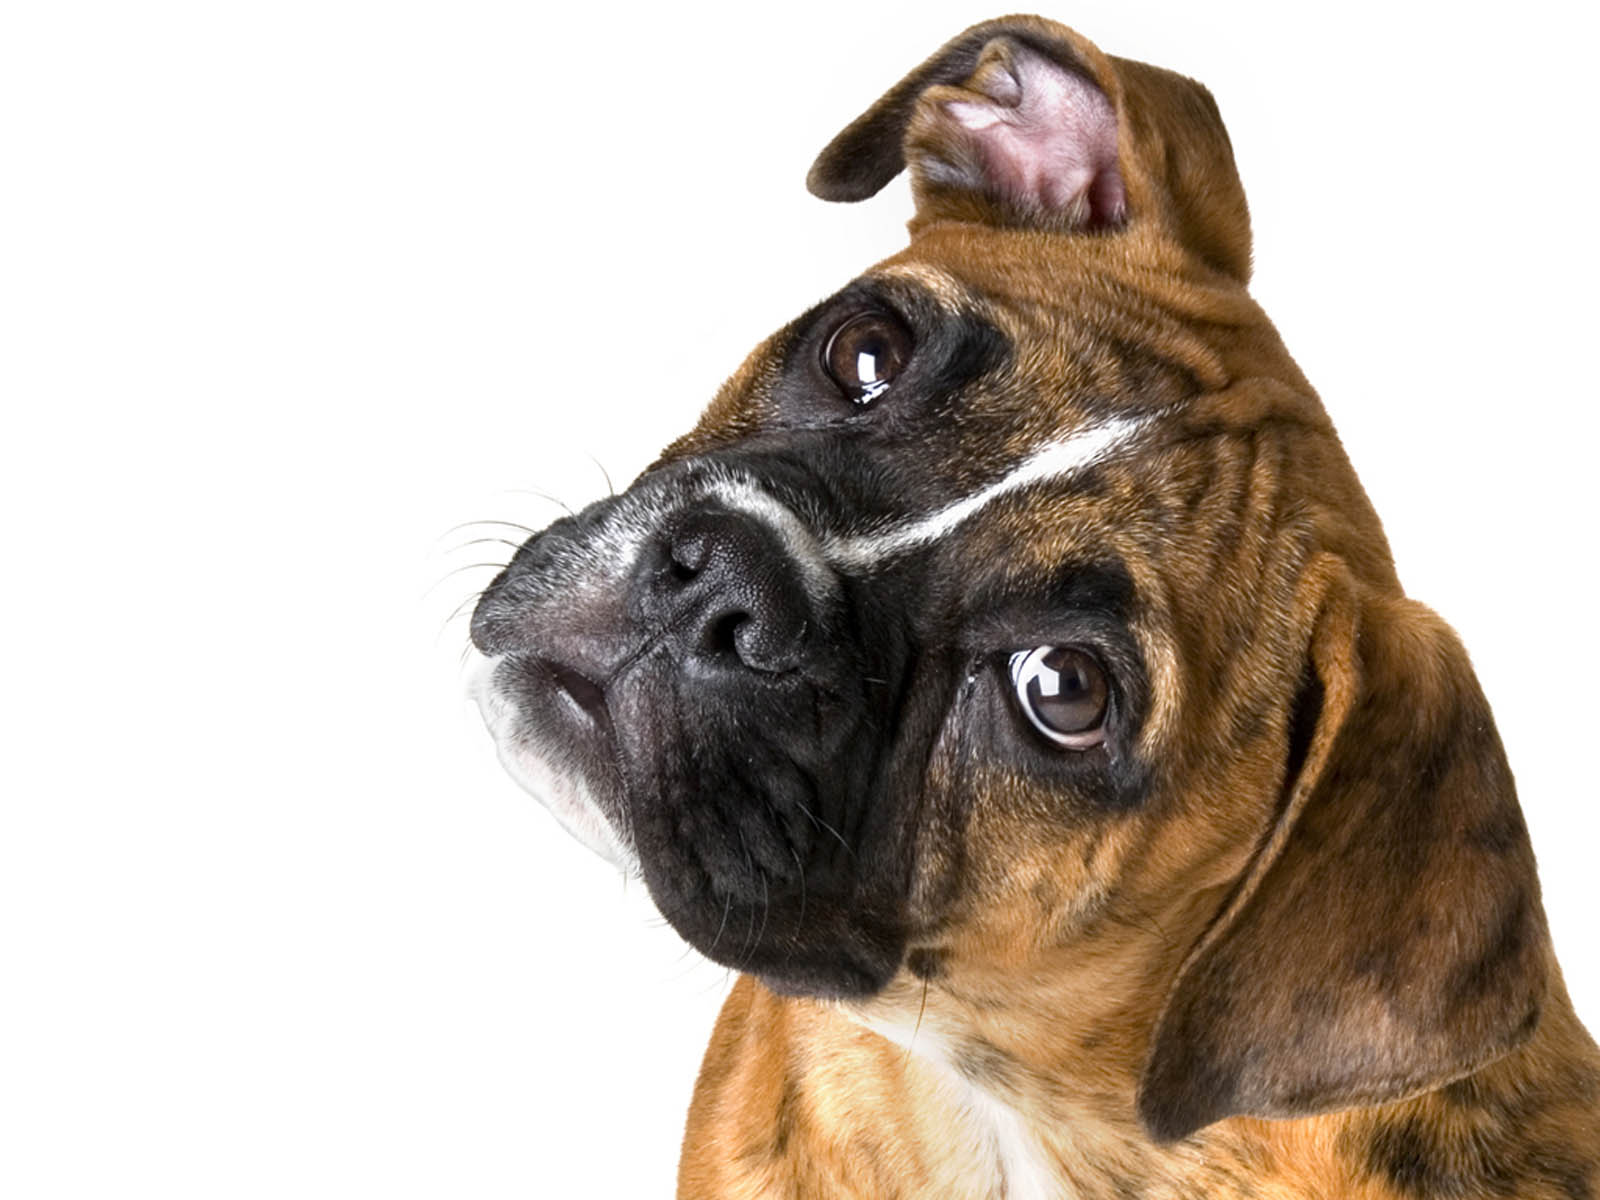 Tag: Boxer Dog Wallpapers, Images, Photos, Pictures and Backgrounds ...